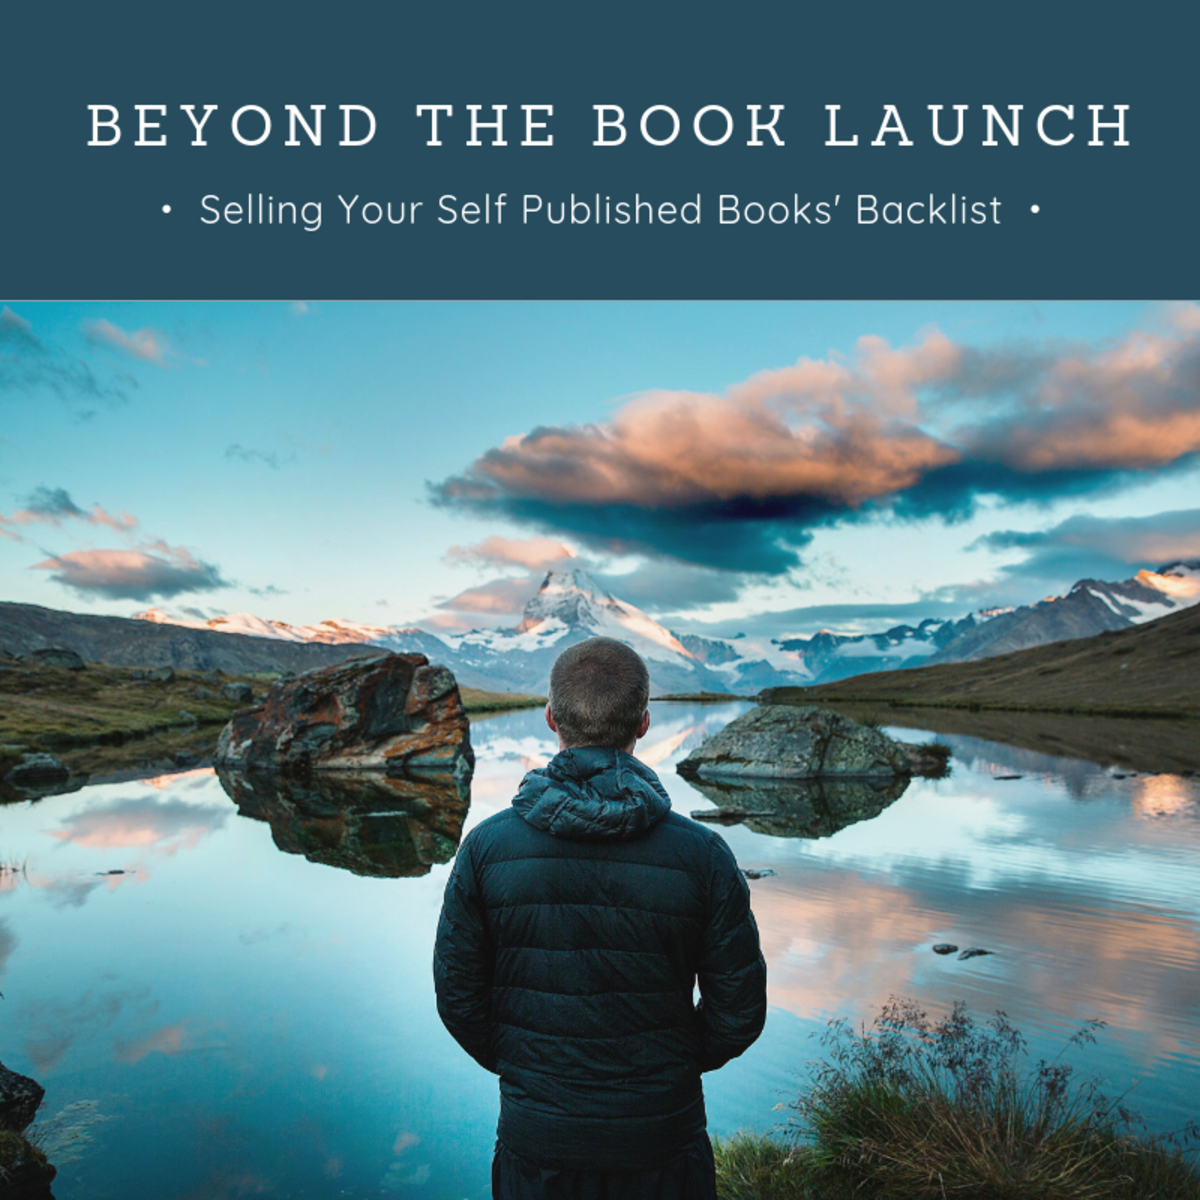 Beyond the Book Launch: Selling Your Self Published Books' Backlist